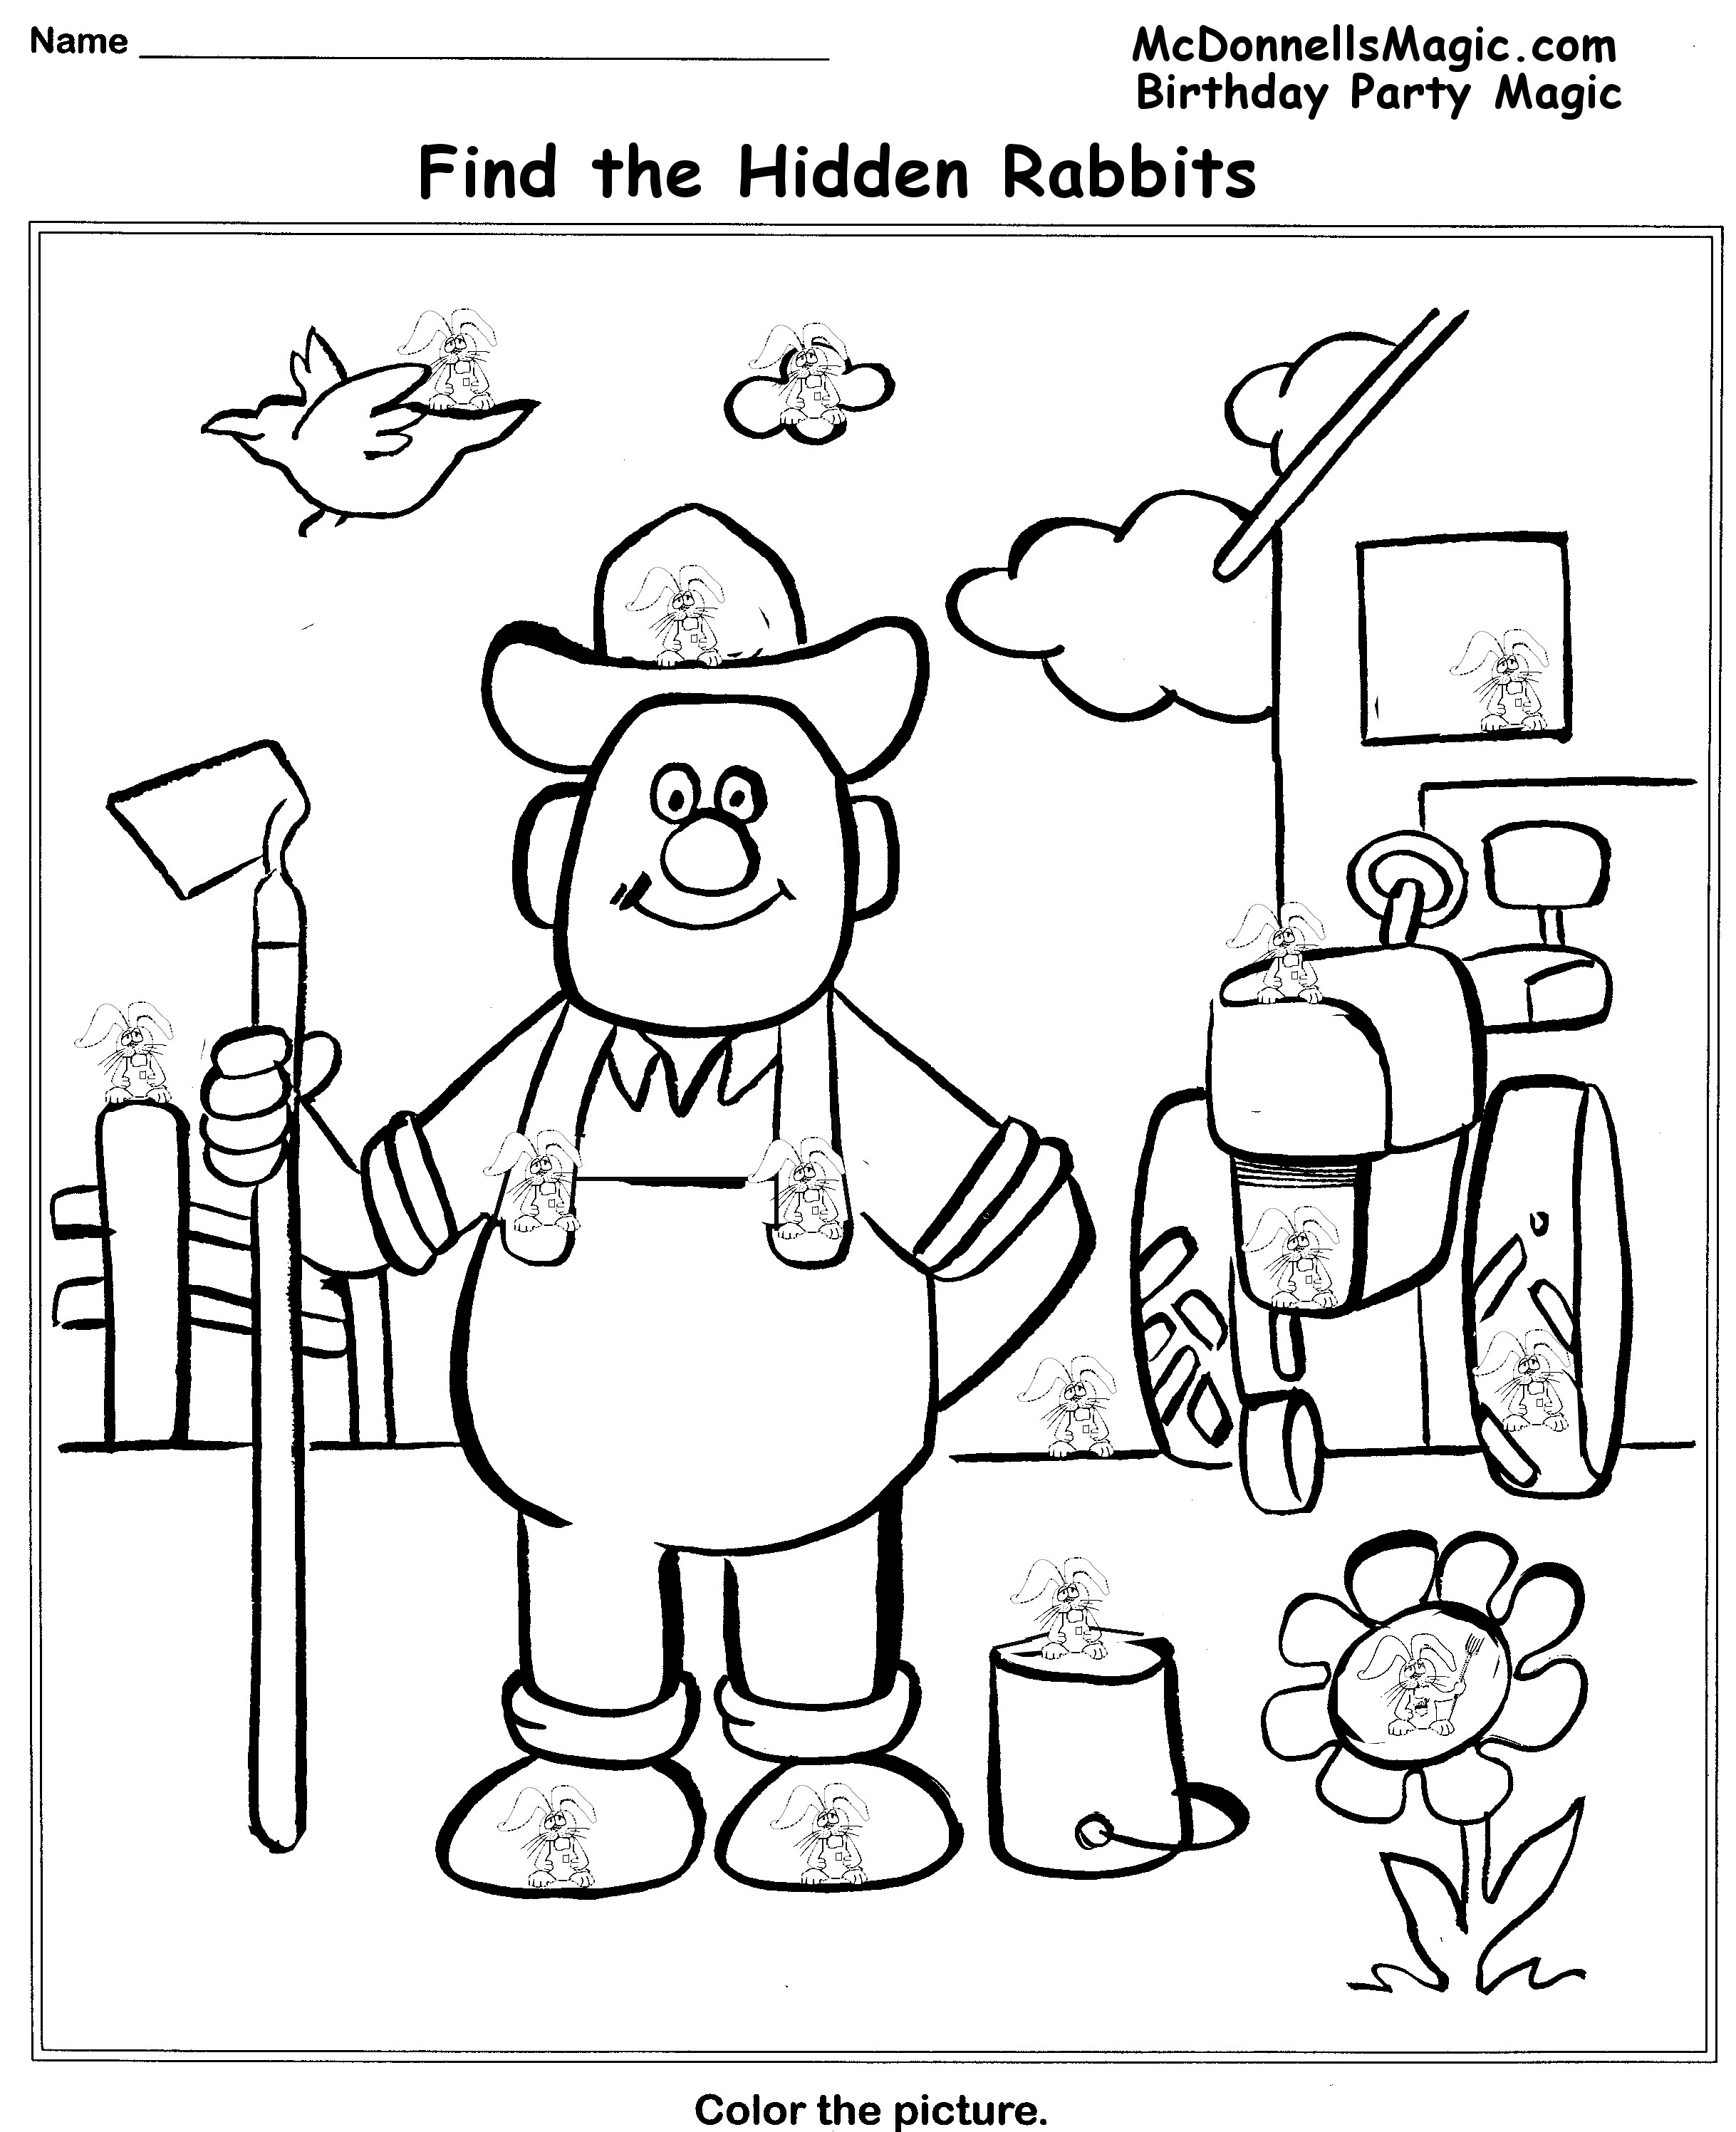 14 Best Images of Preschool Worksheet To Birthday Party